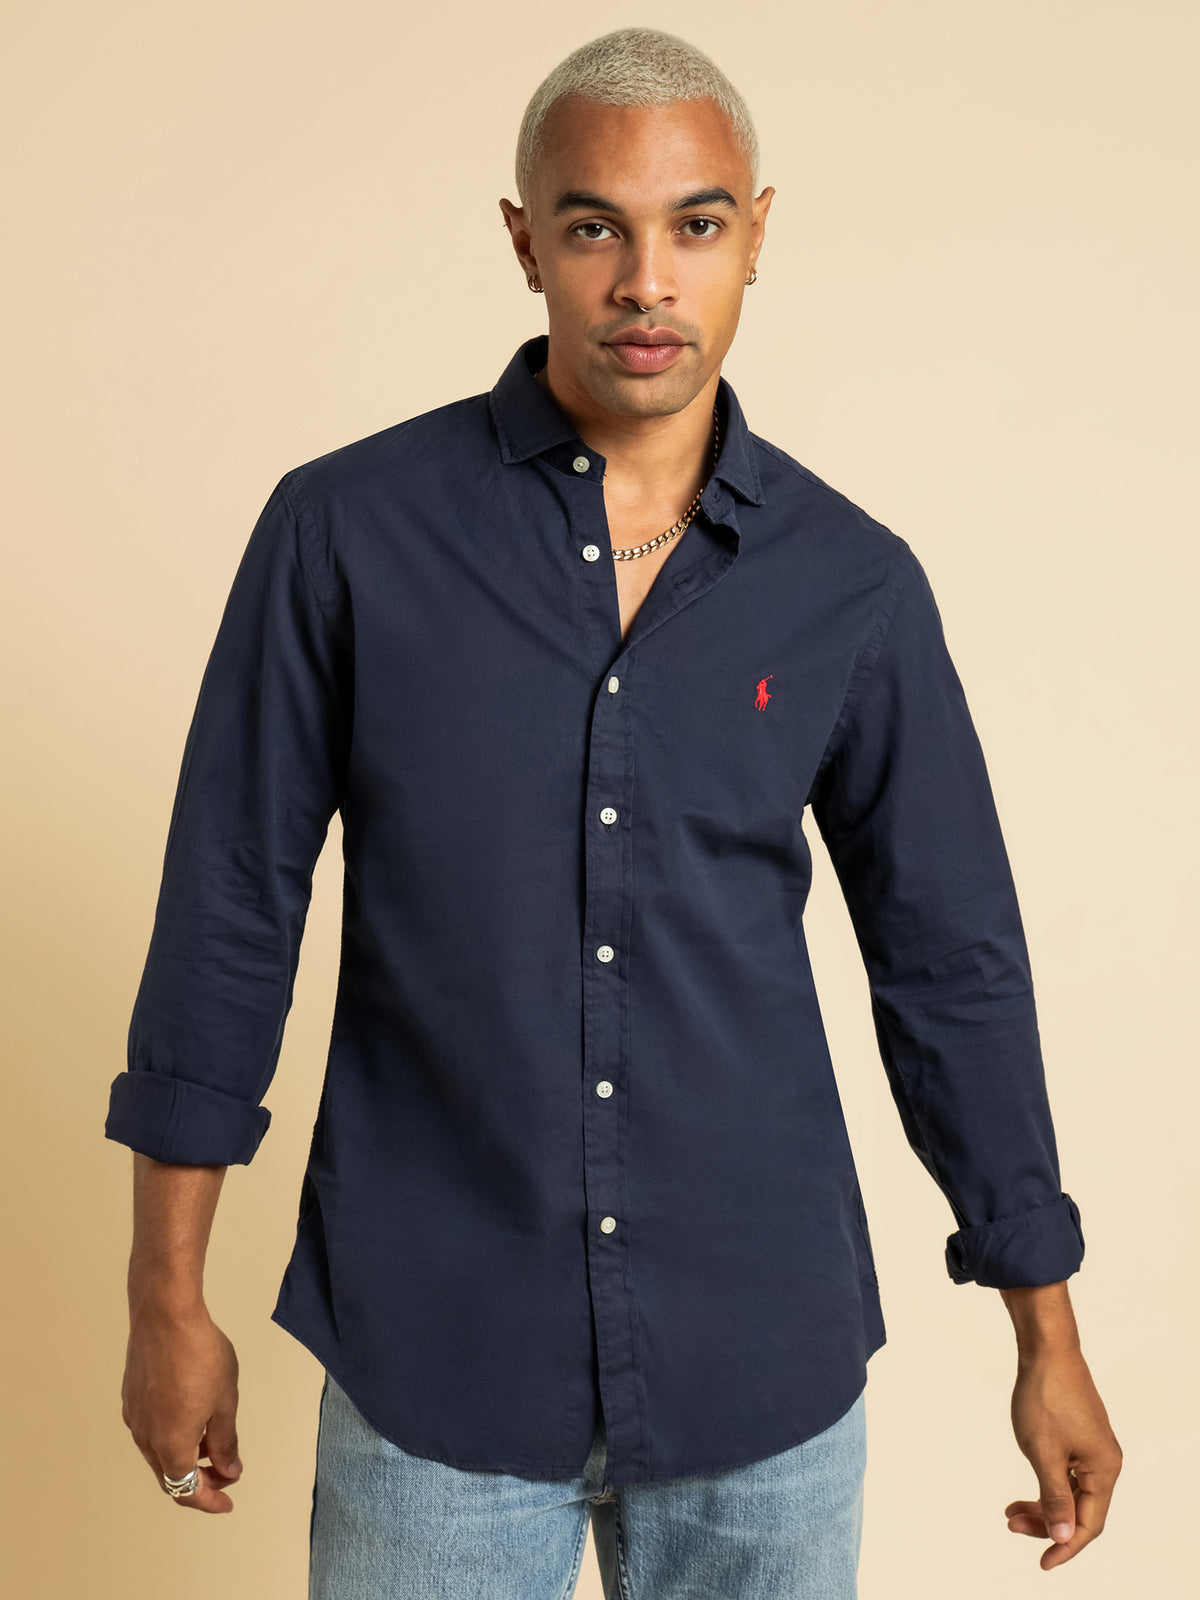 Slim Fit Button Up Shirt in Navy